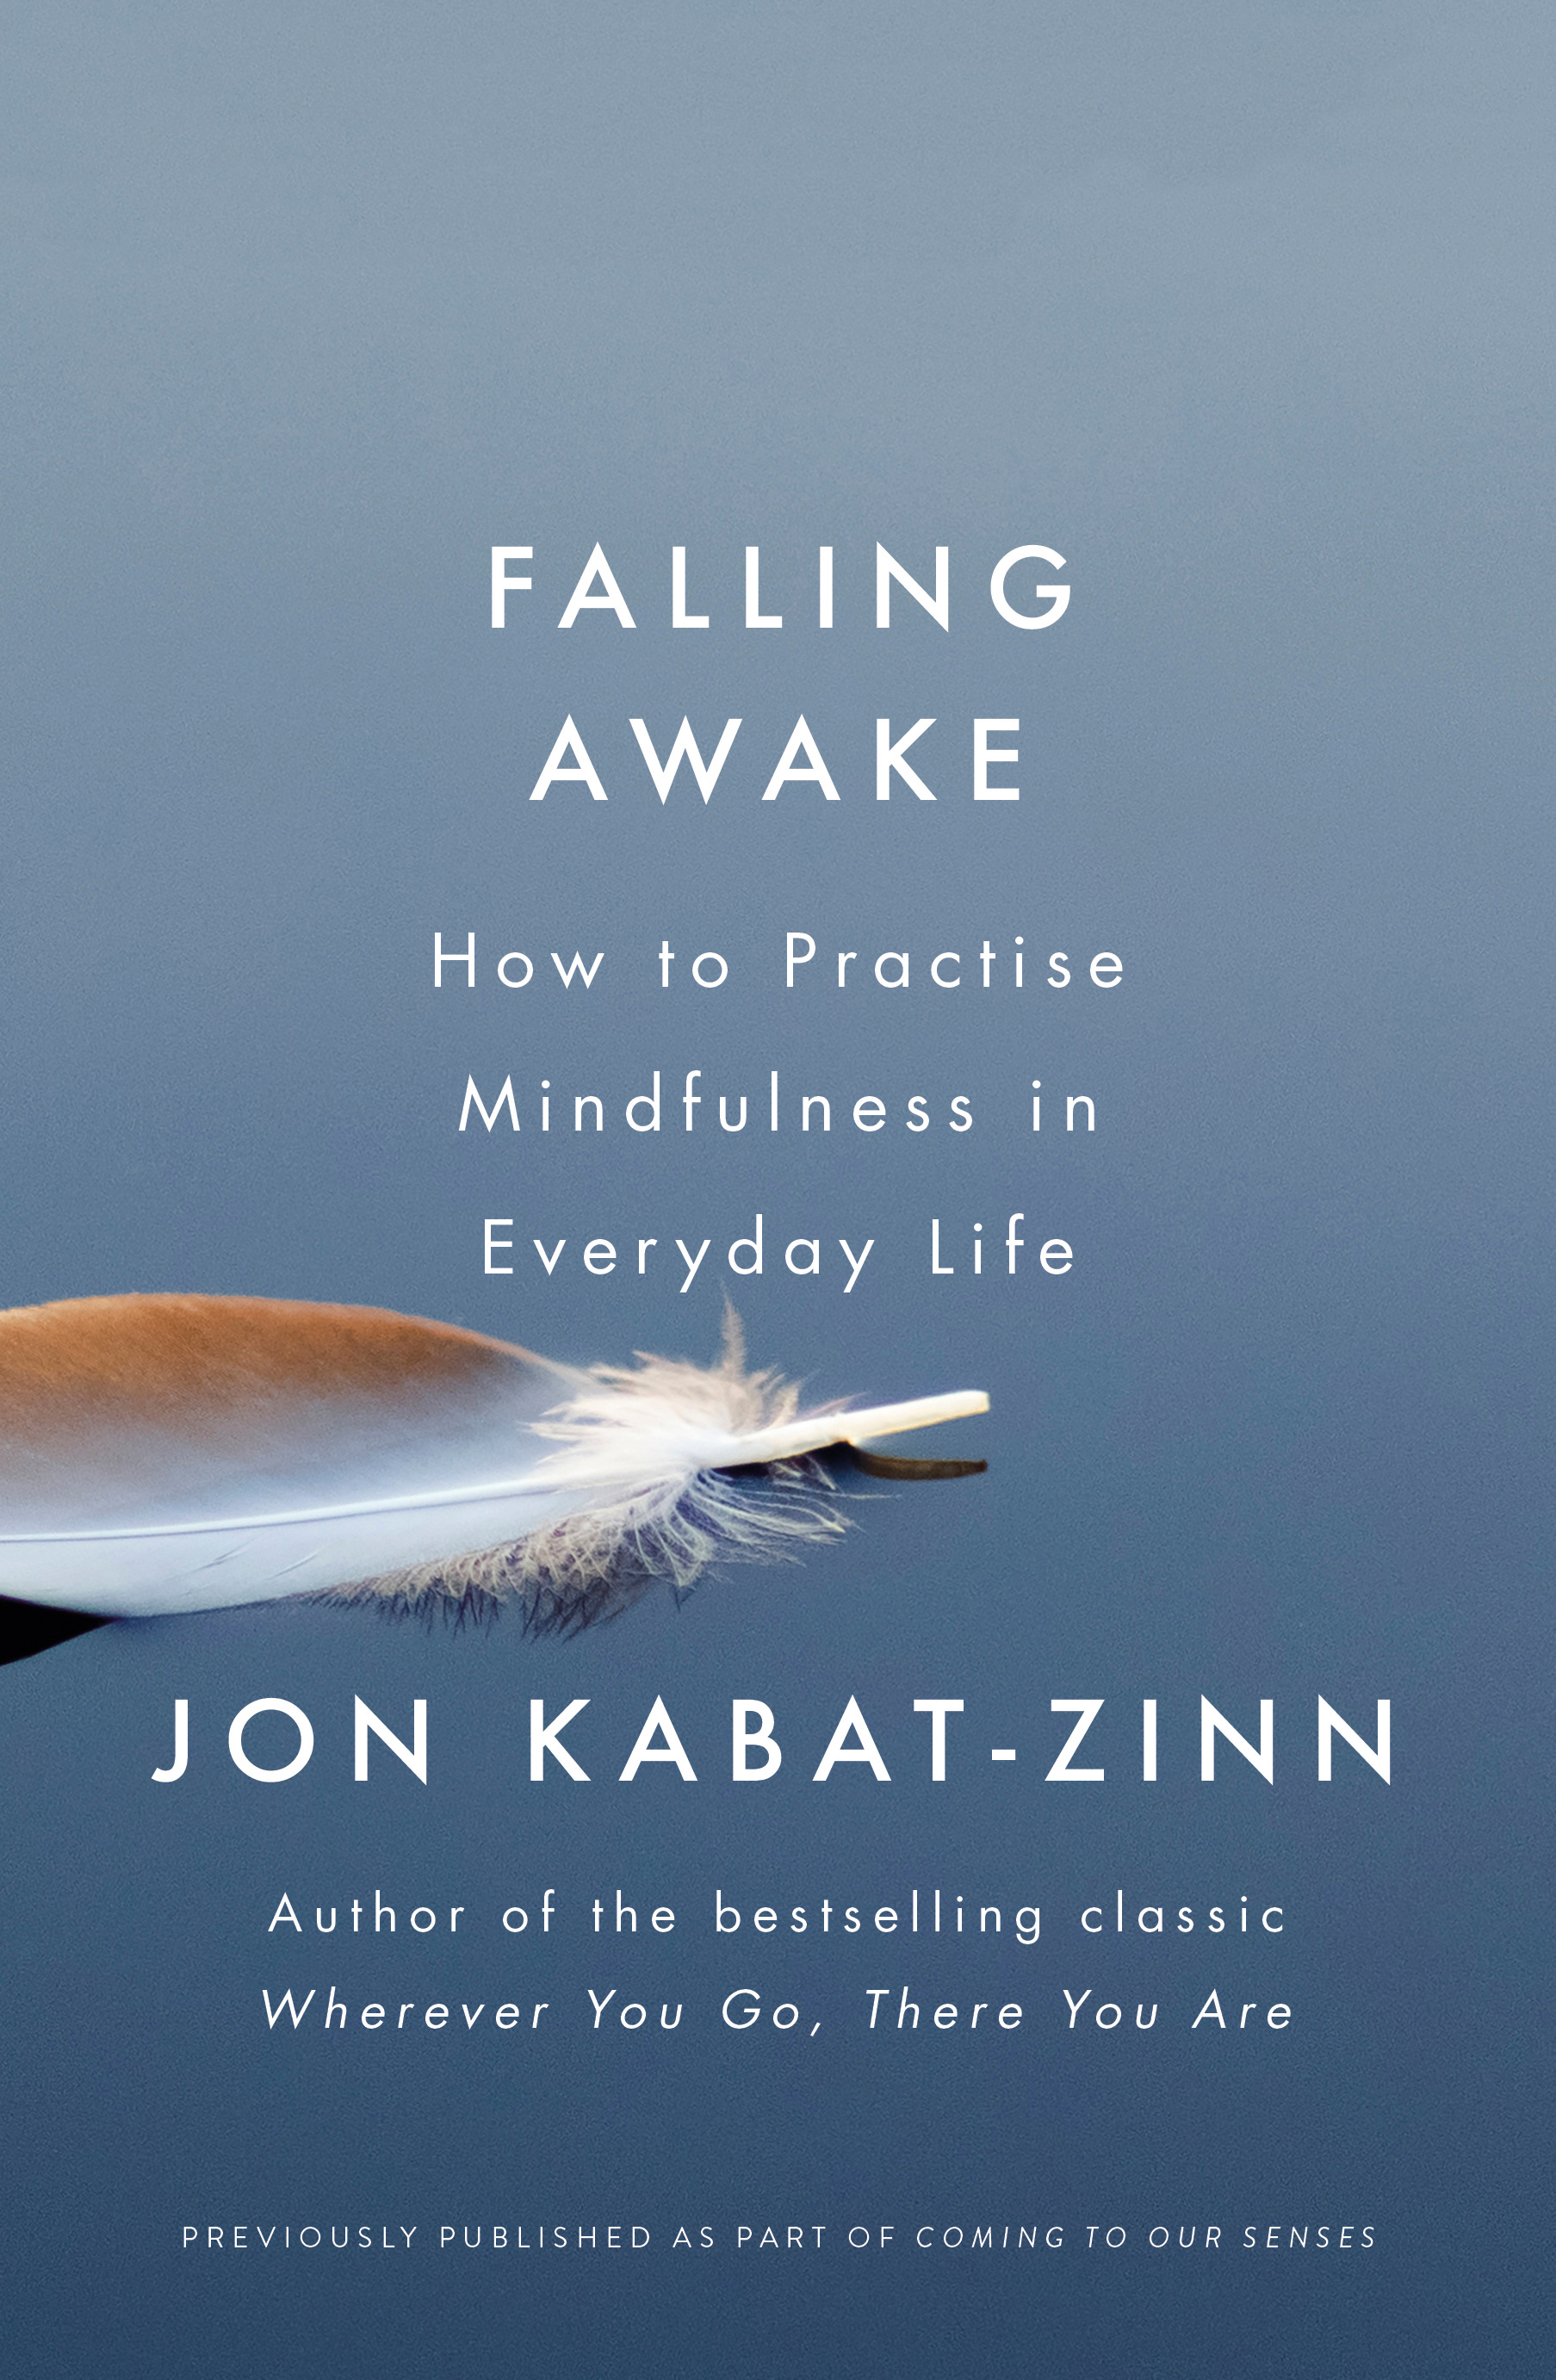 Falling AwakeHow to Practice Mindfulness in Everyday Life